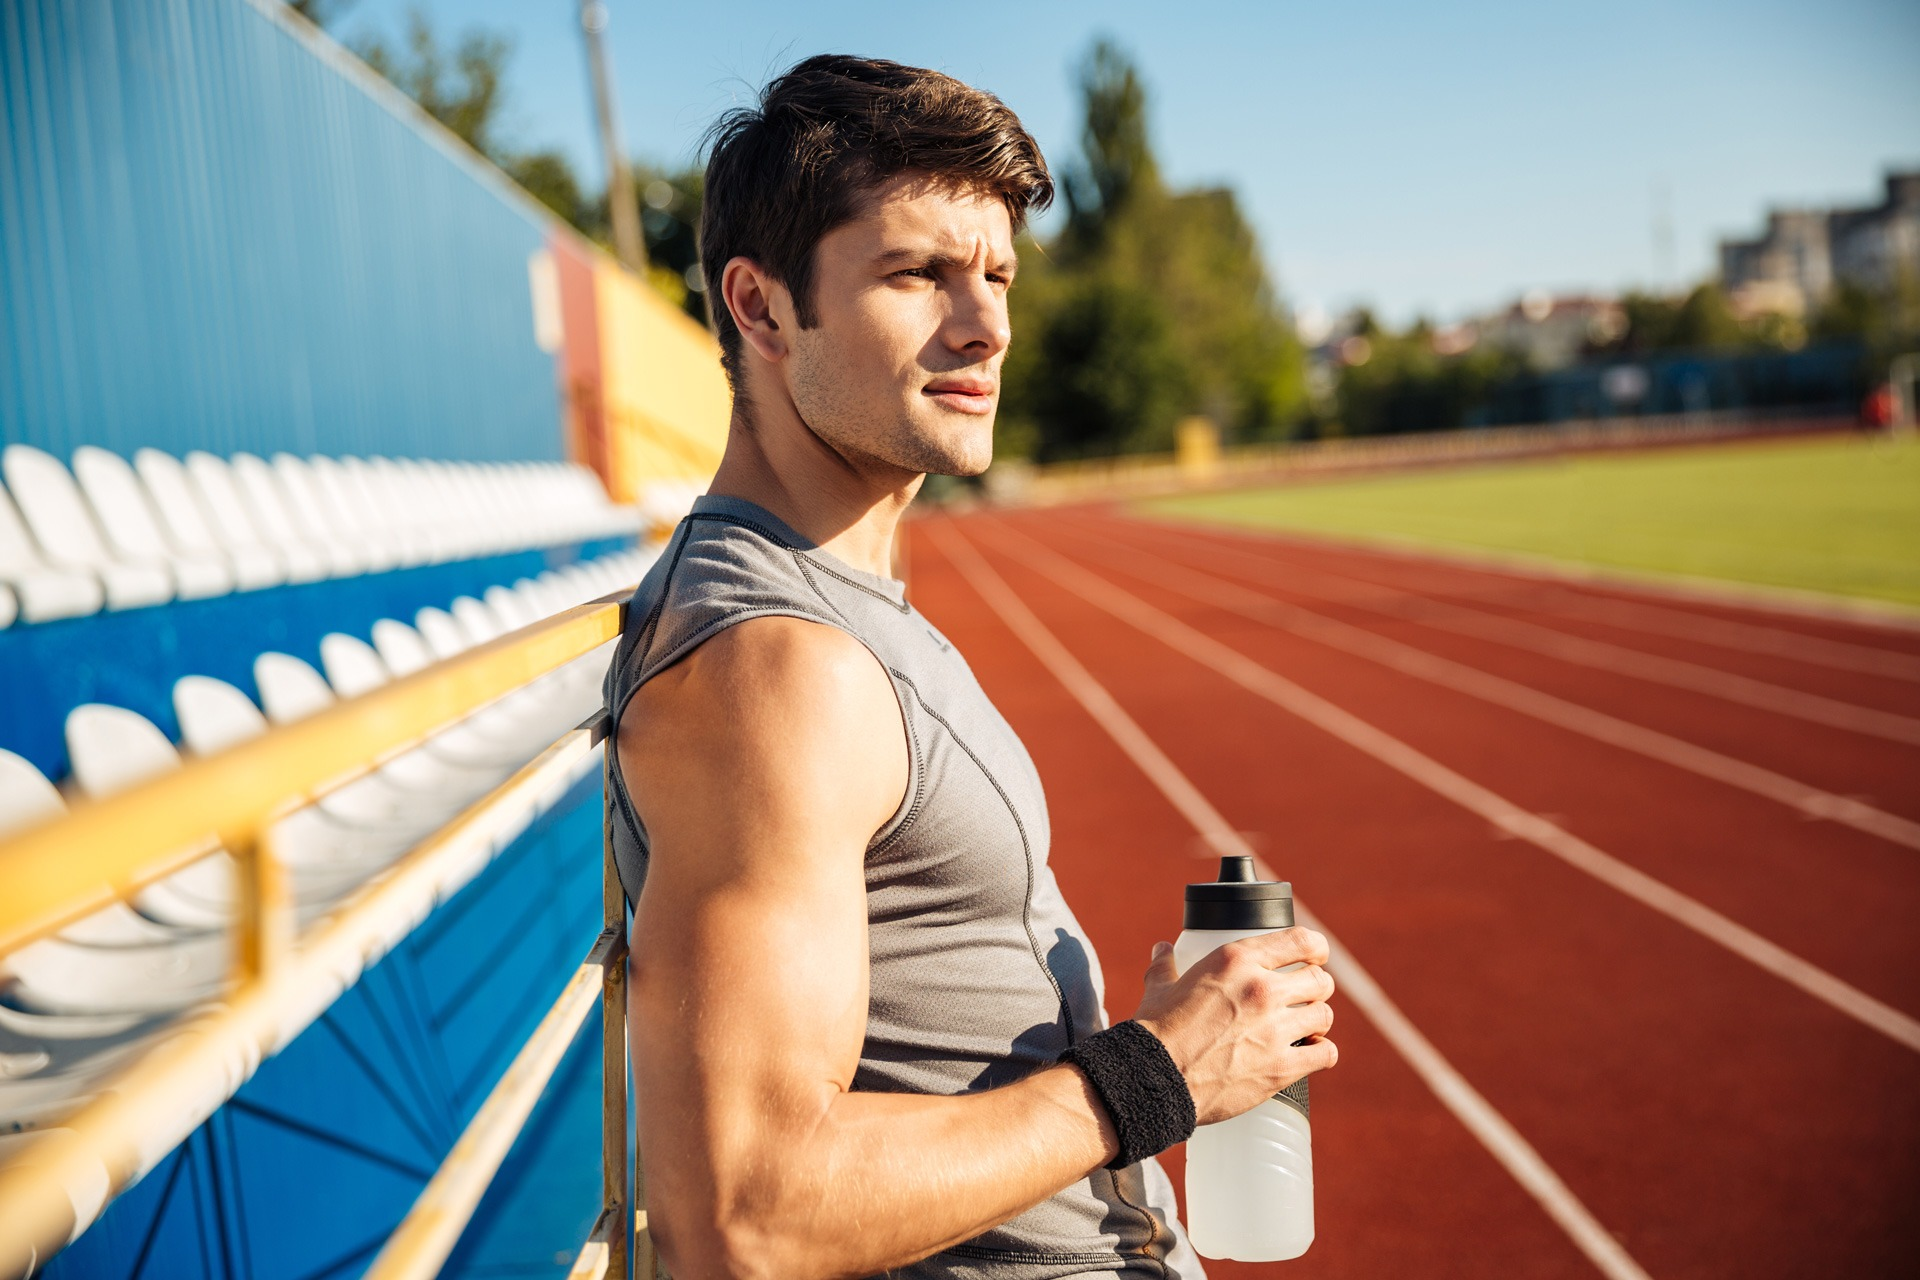 Ten Top Tips for Hydration